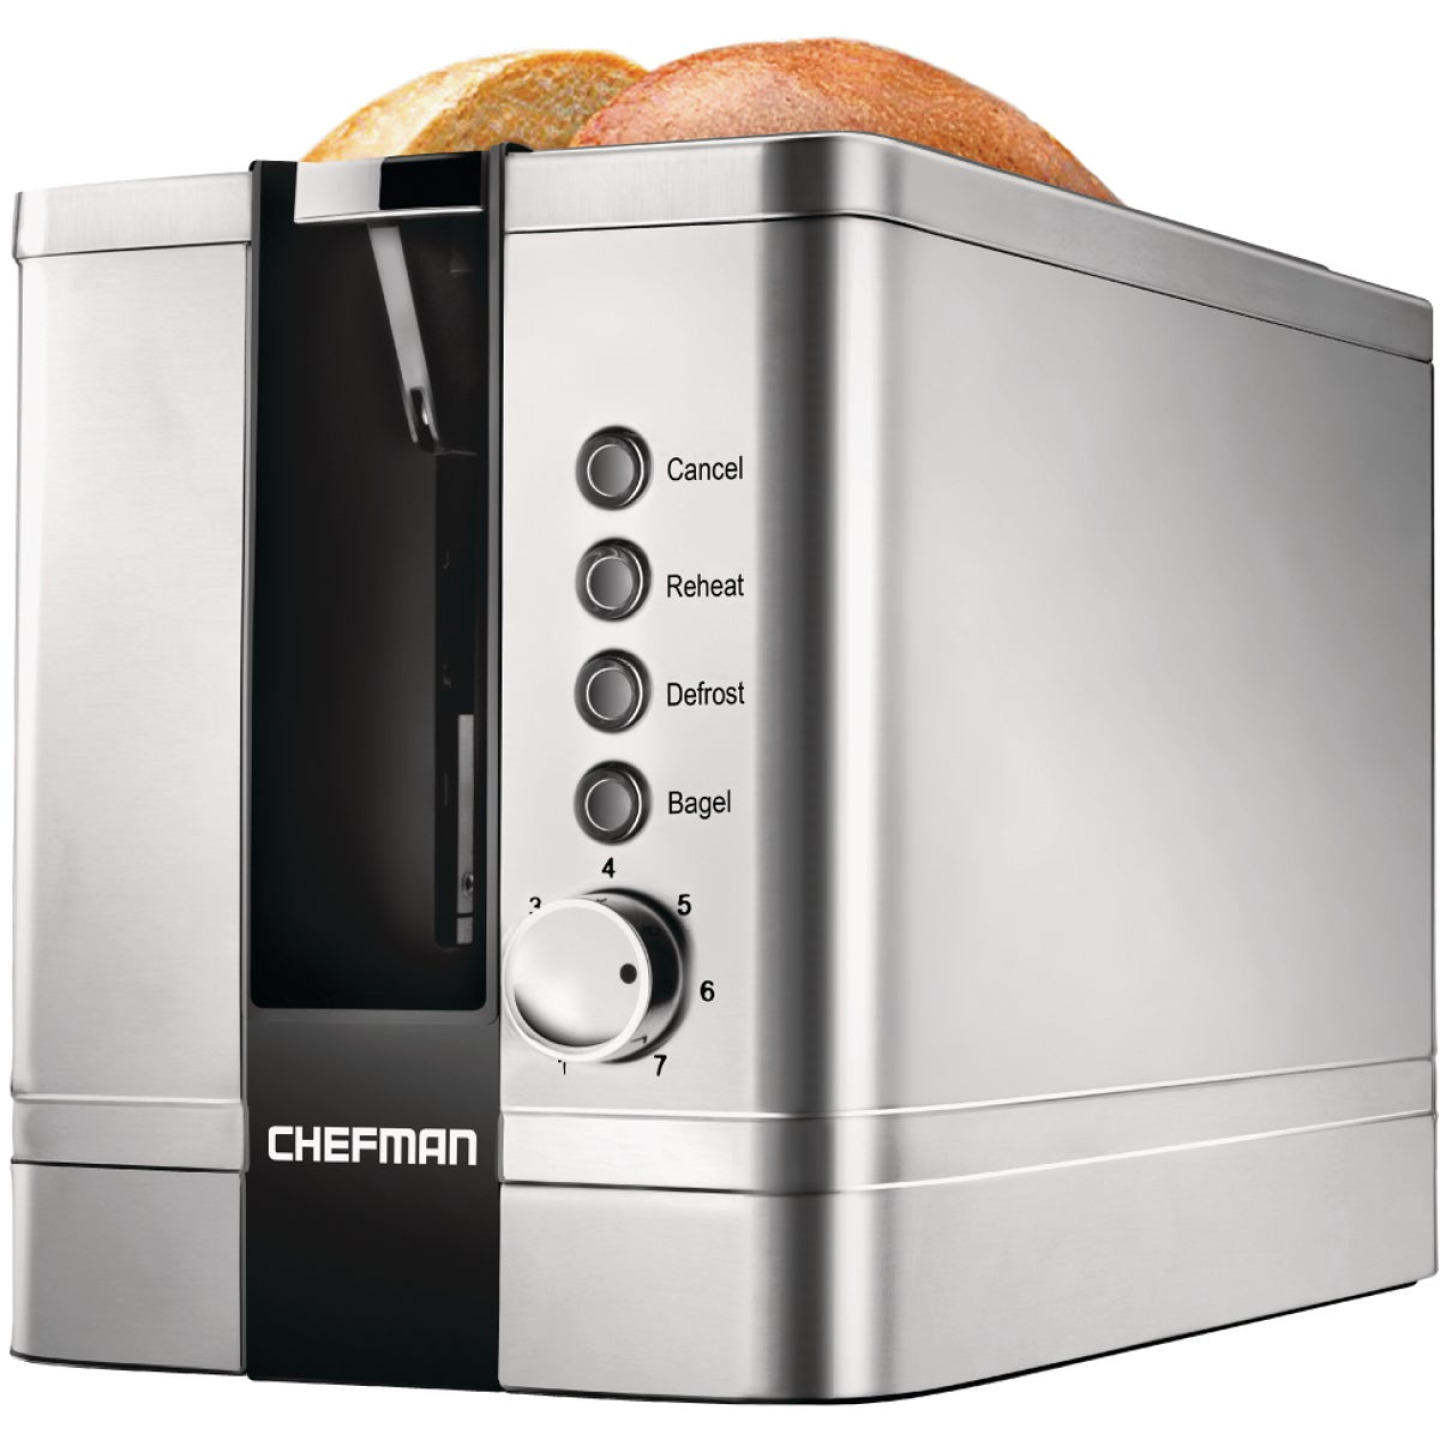 Chefman 2-Slice Stainless Steel Pop-Up Toaster with Extra Wide Slots Image 1